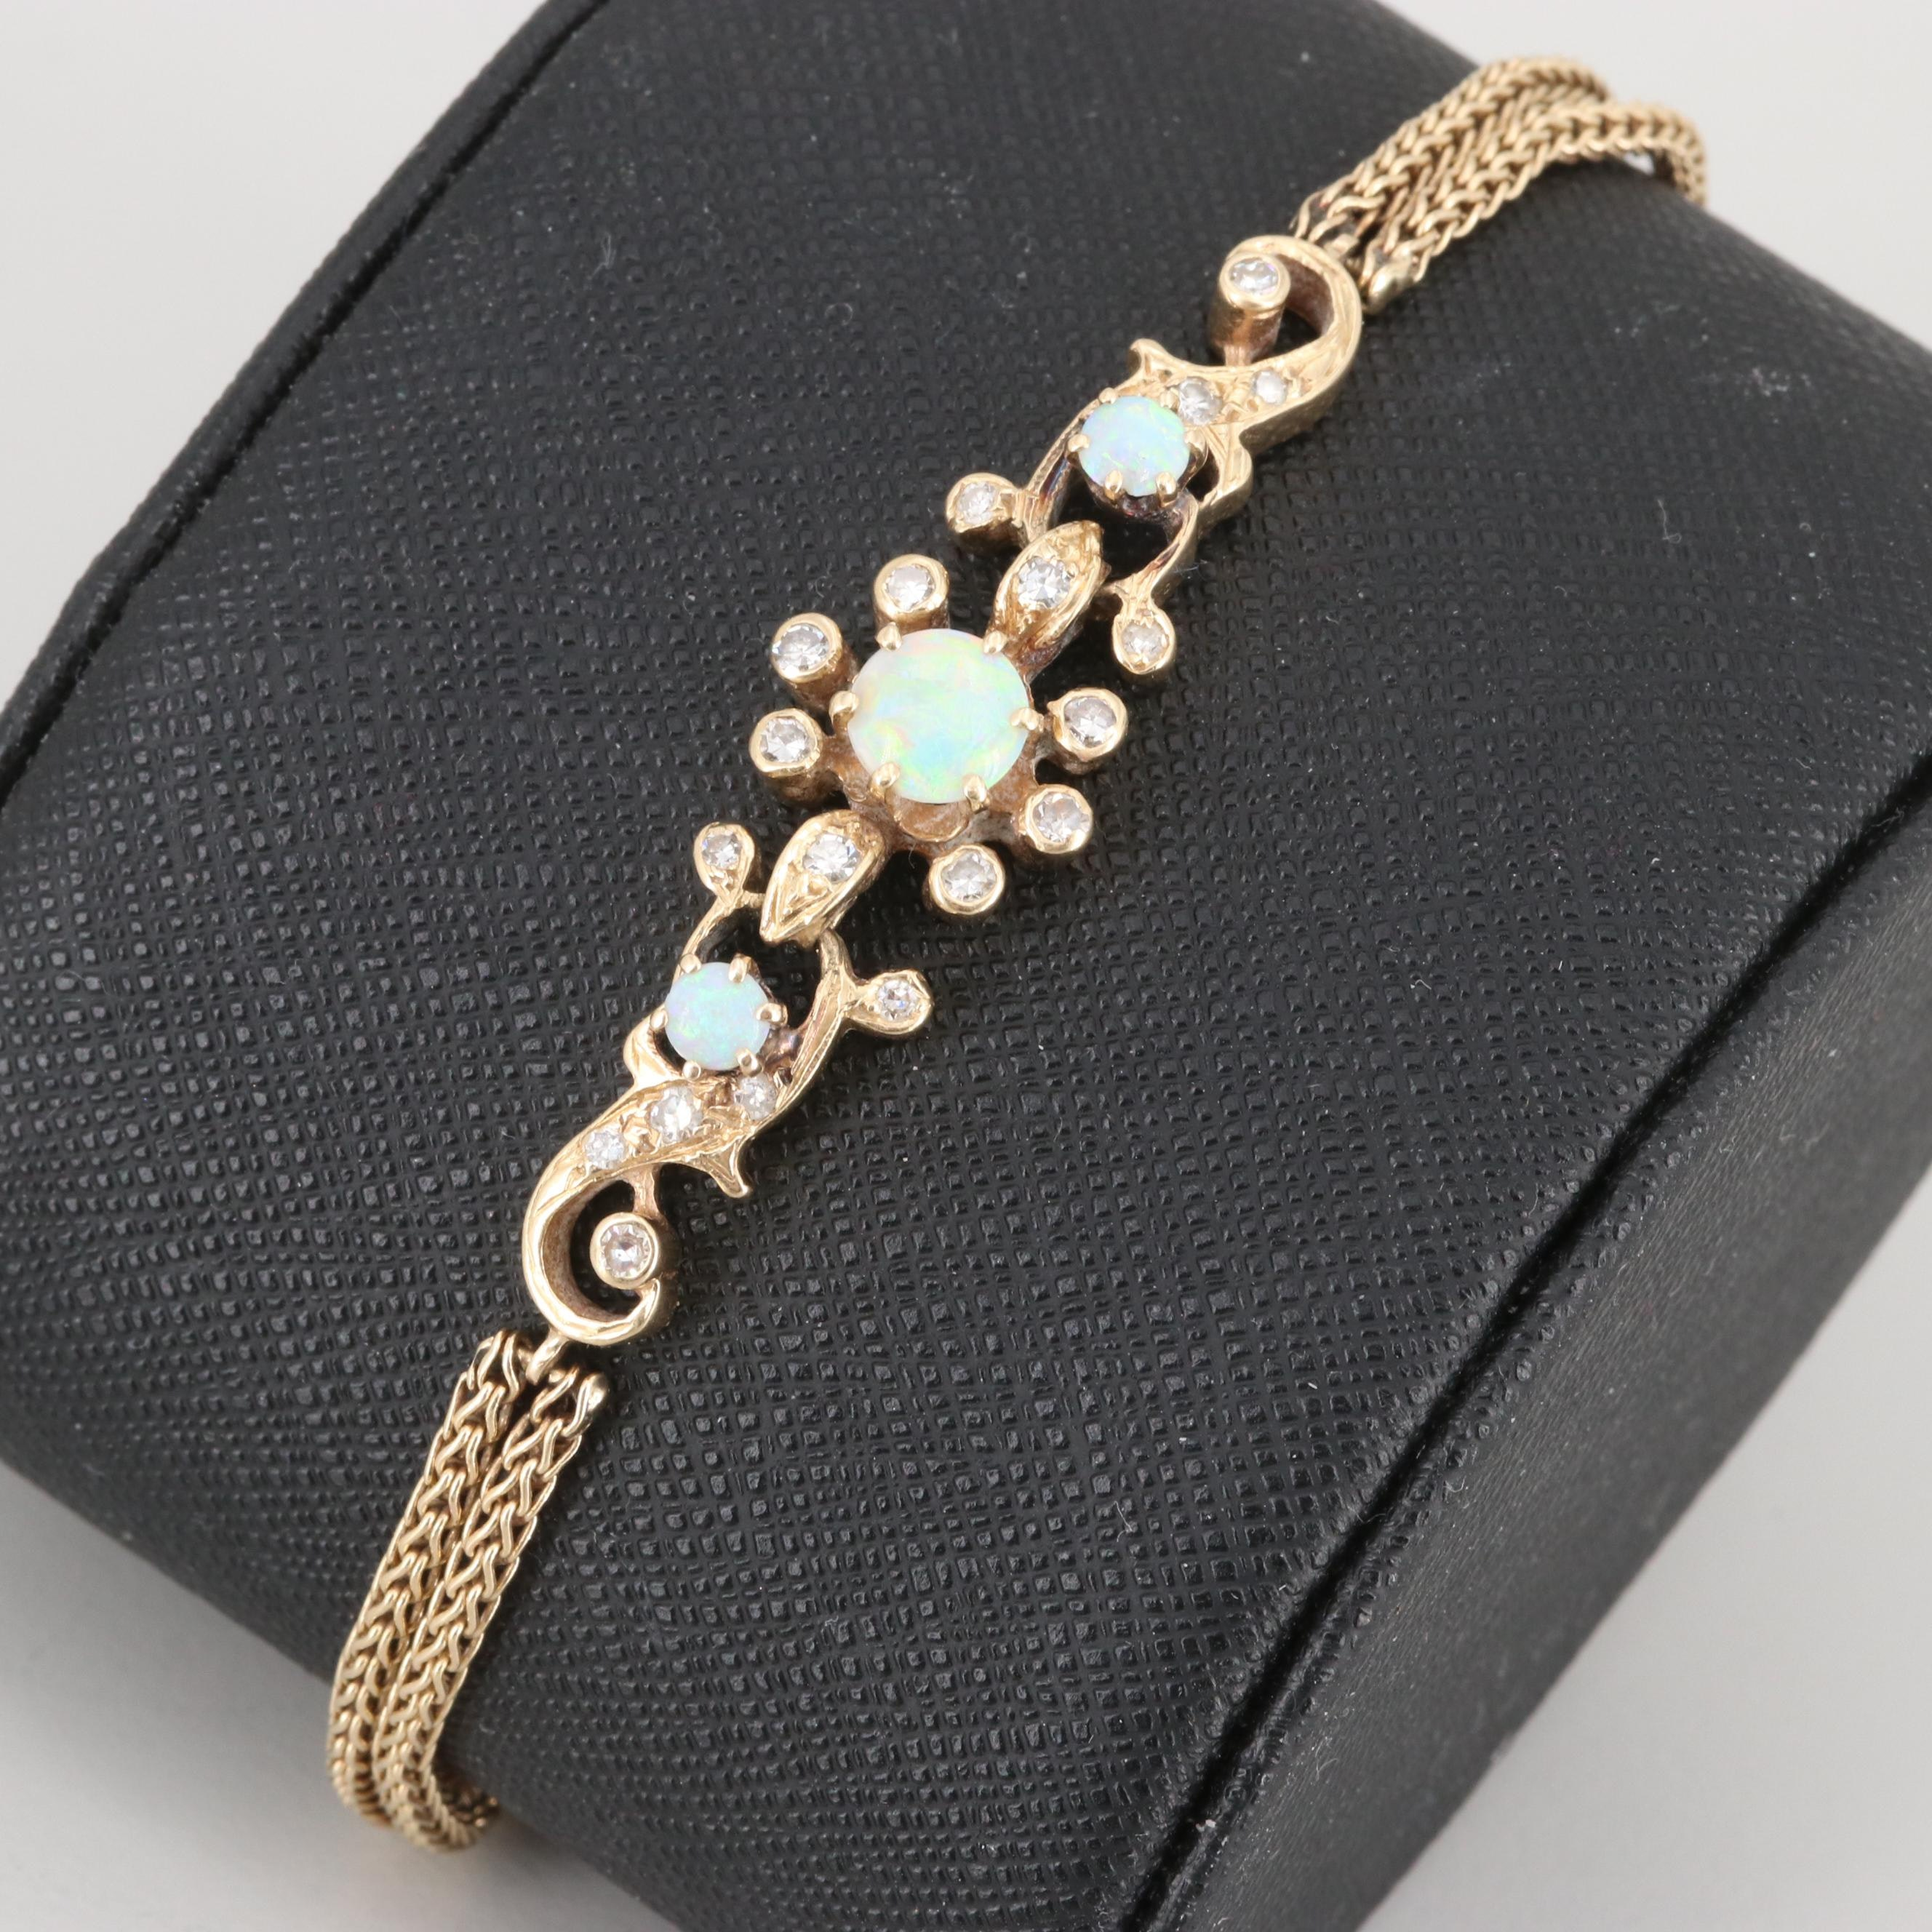 Vintage 14K Yellow Gold Opal and Diamond Bracelet